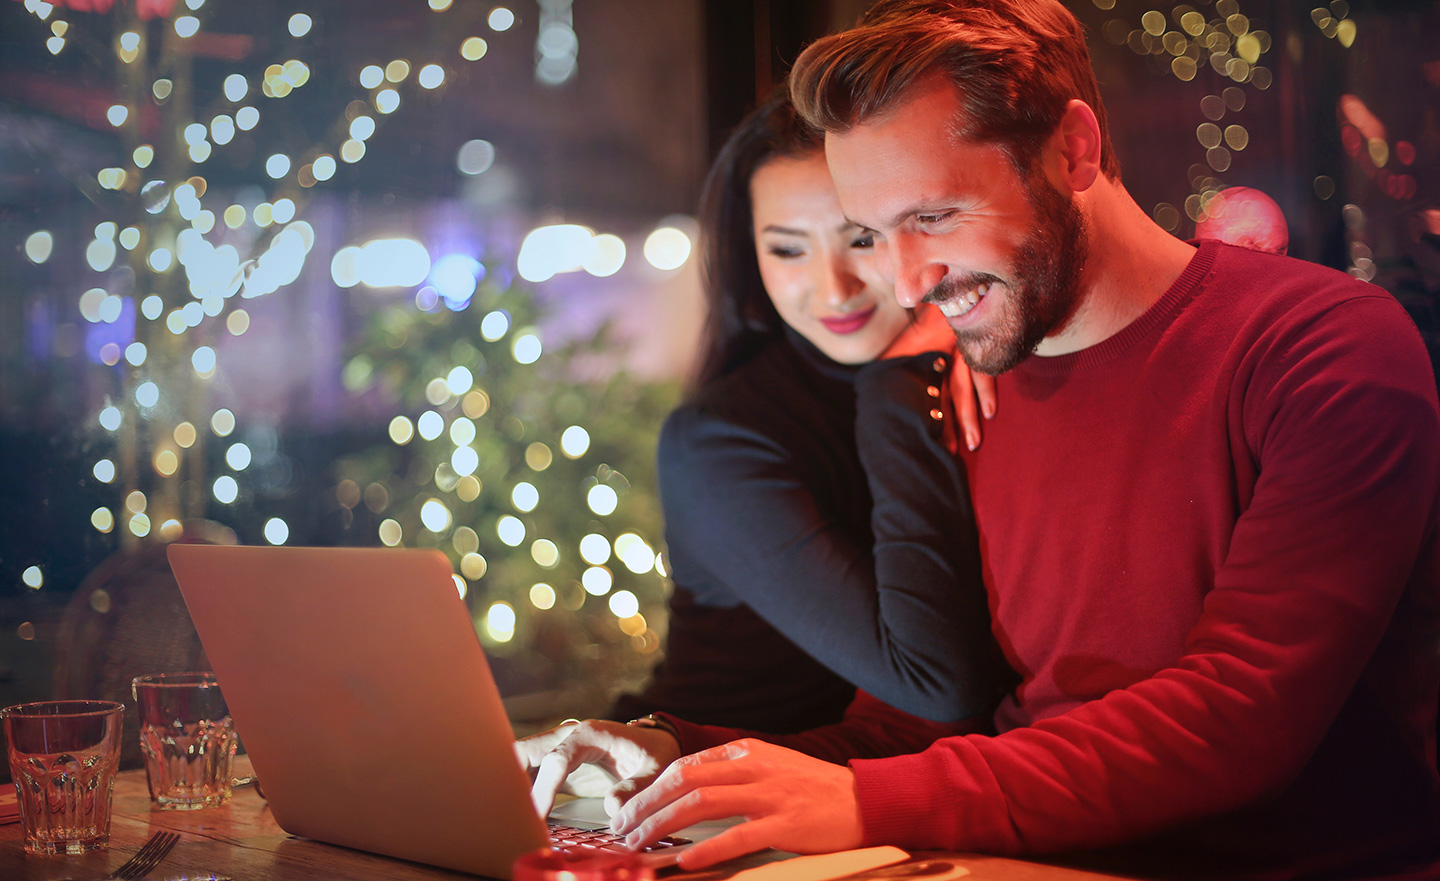 Smiling Man and Woman Planning 2019 New Years Dental Health Resolutions